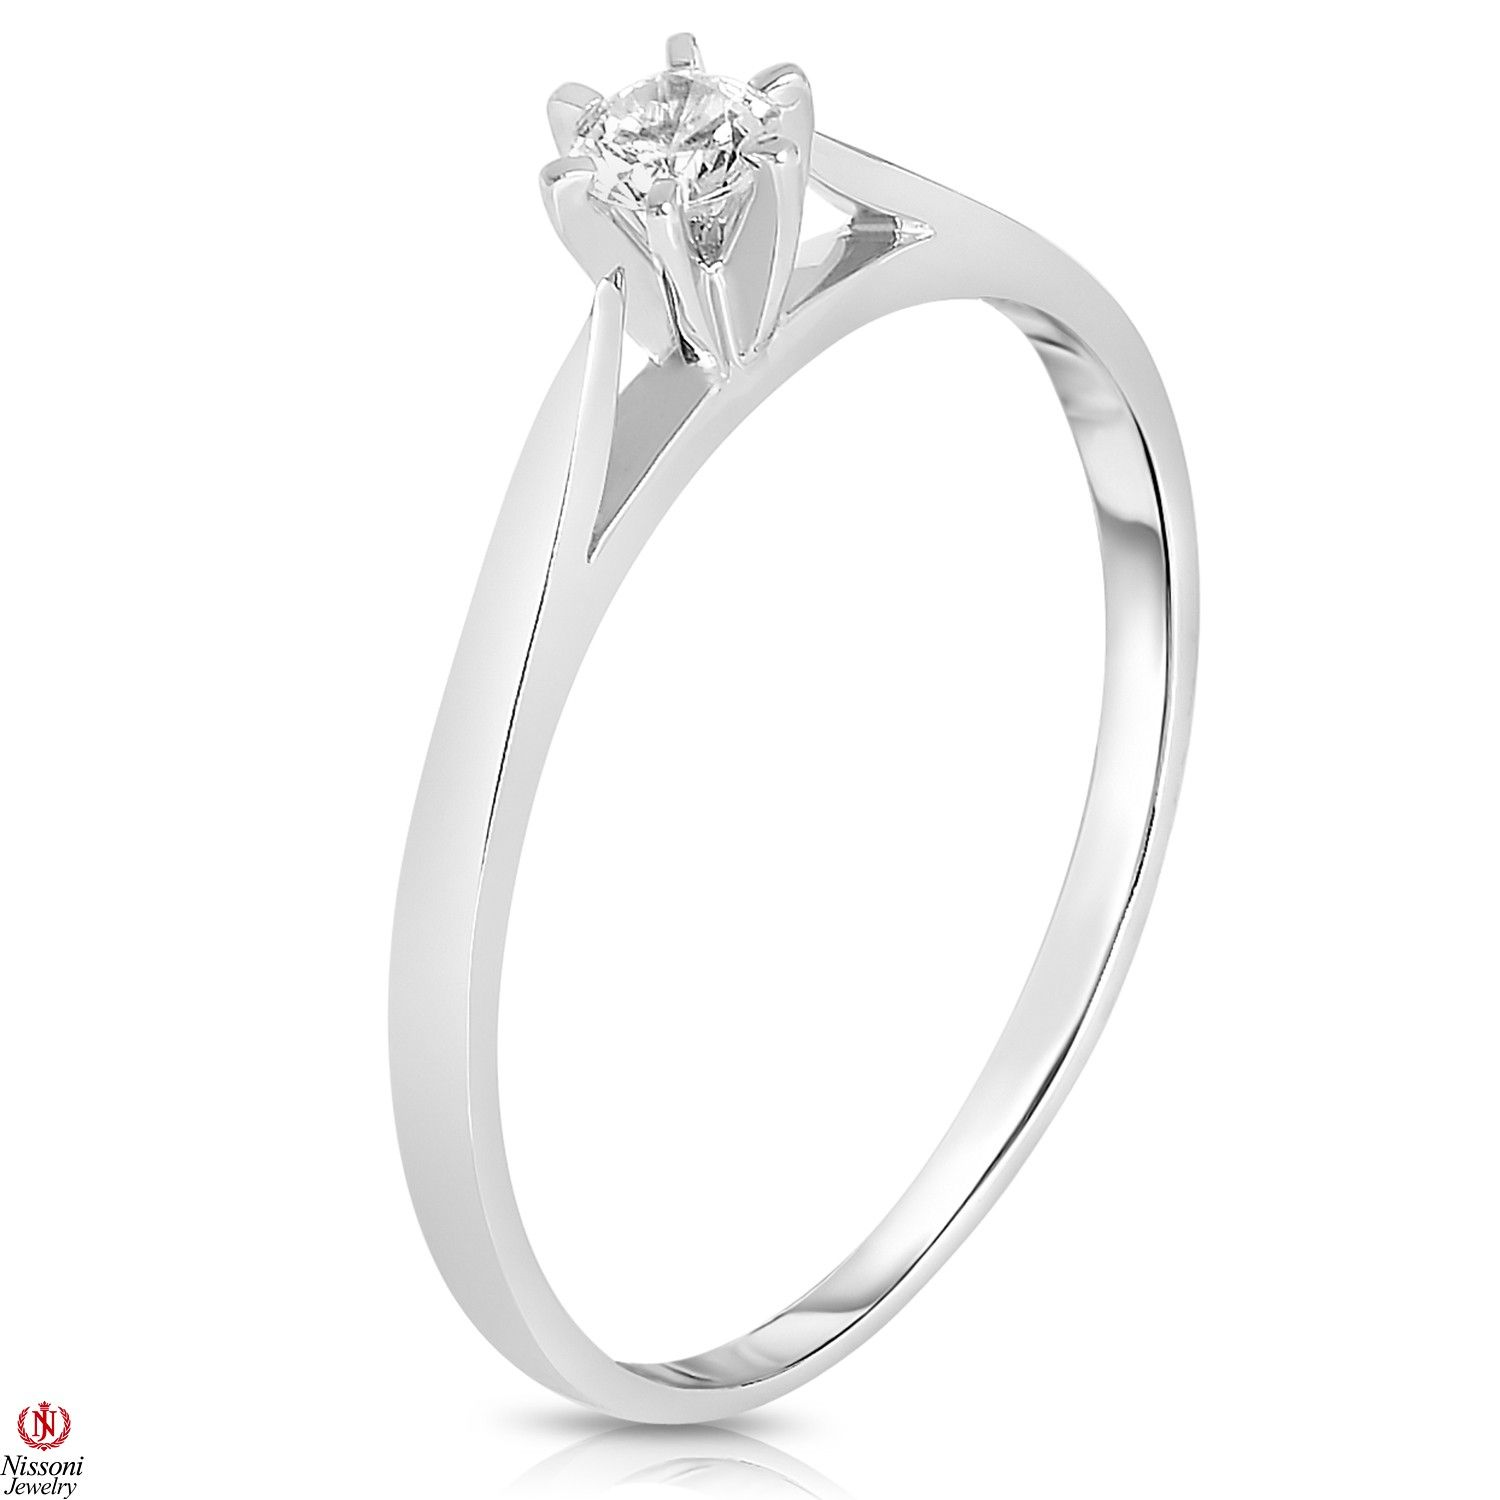 Ebay NissoniJewelry presents La s 1 10CT Diamond Engagement